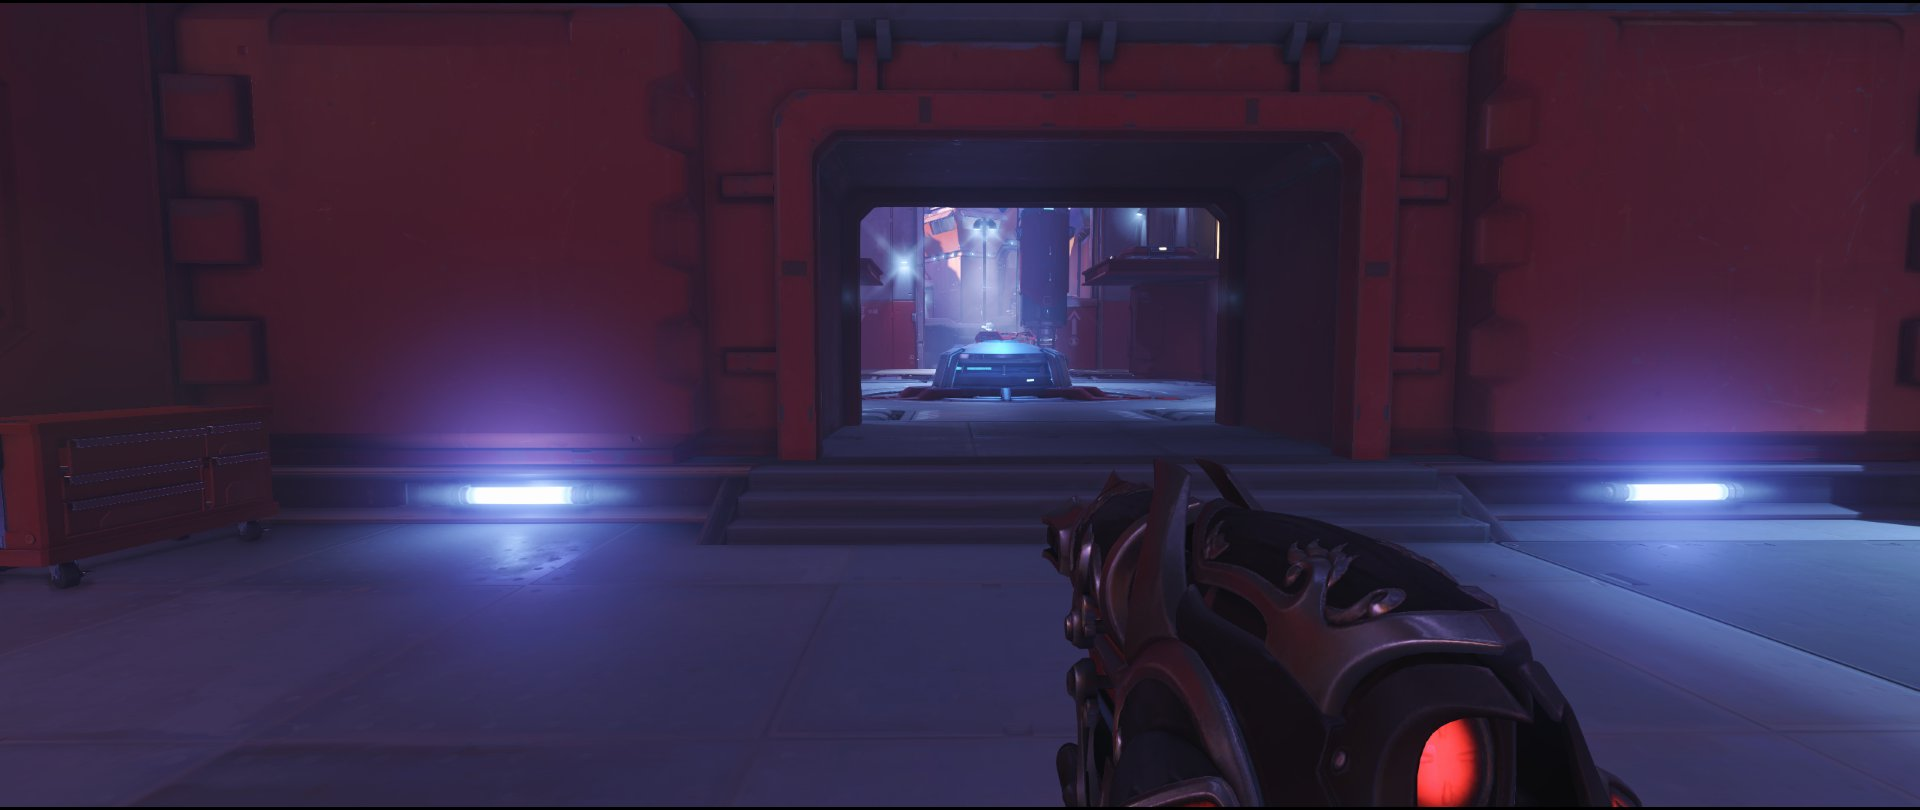 Mid spawn ground level defense sniping spot Widowmaker Volskaya Industries Overwatch.jpg